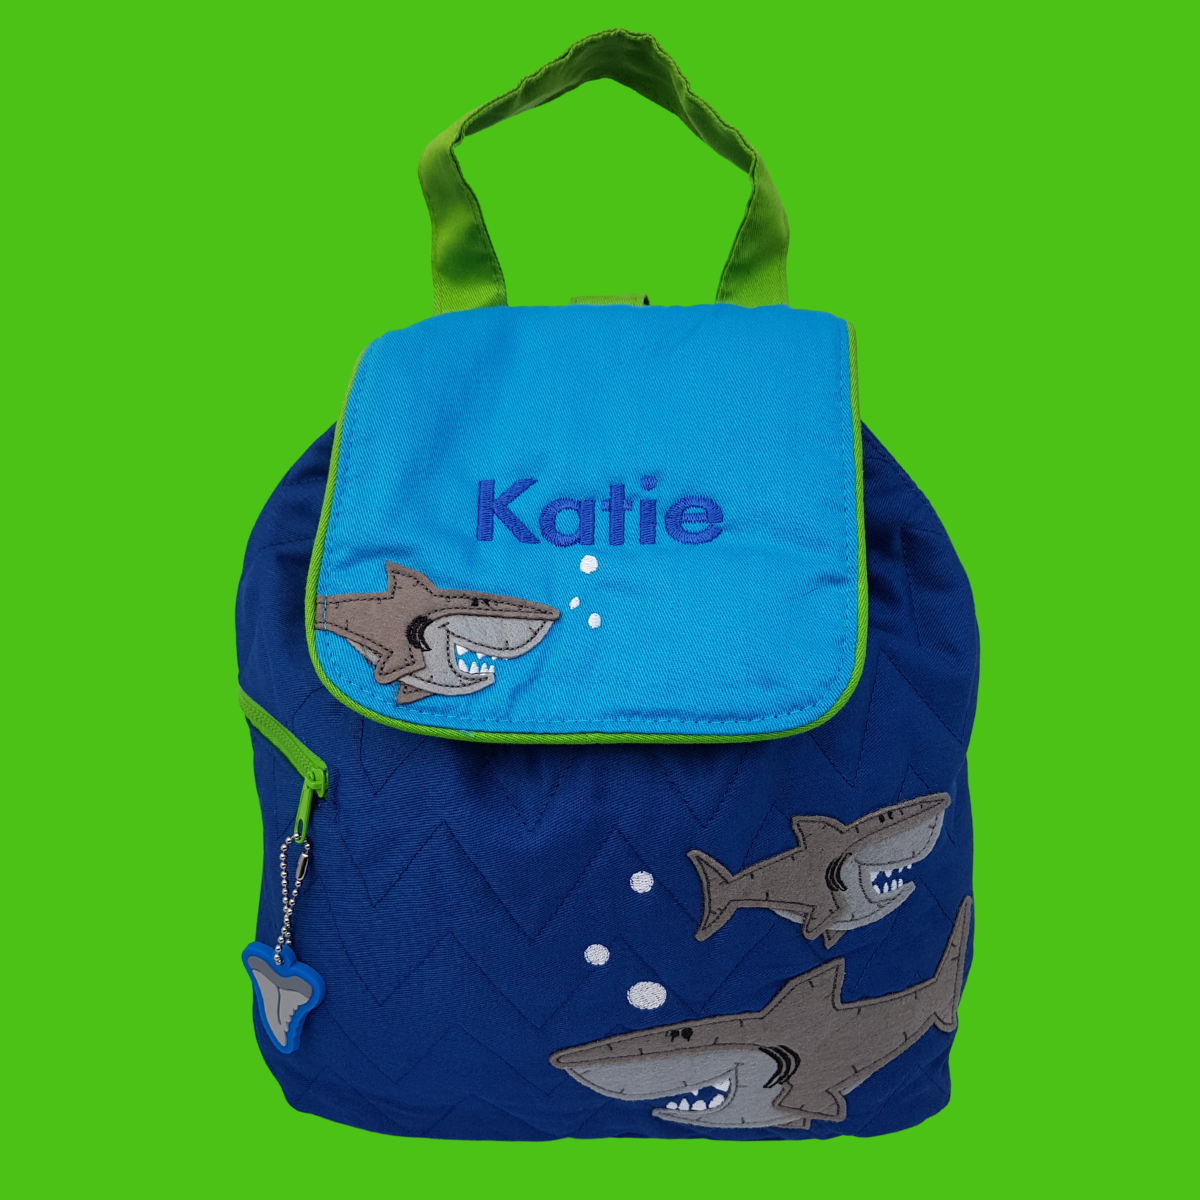 Personalised Stephen Joseph shark child's backpack made from royal blue quilted fabric with a grey shark design on the front. The opening flap which is mid blue can be embroidered with a name of your choice.